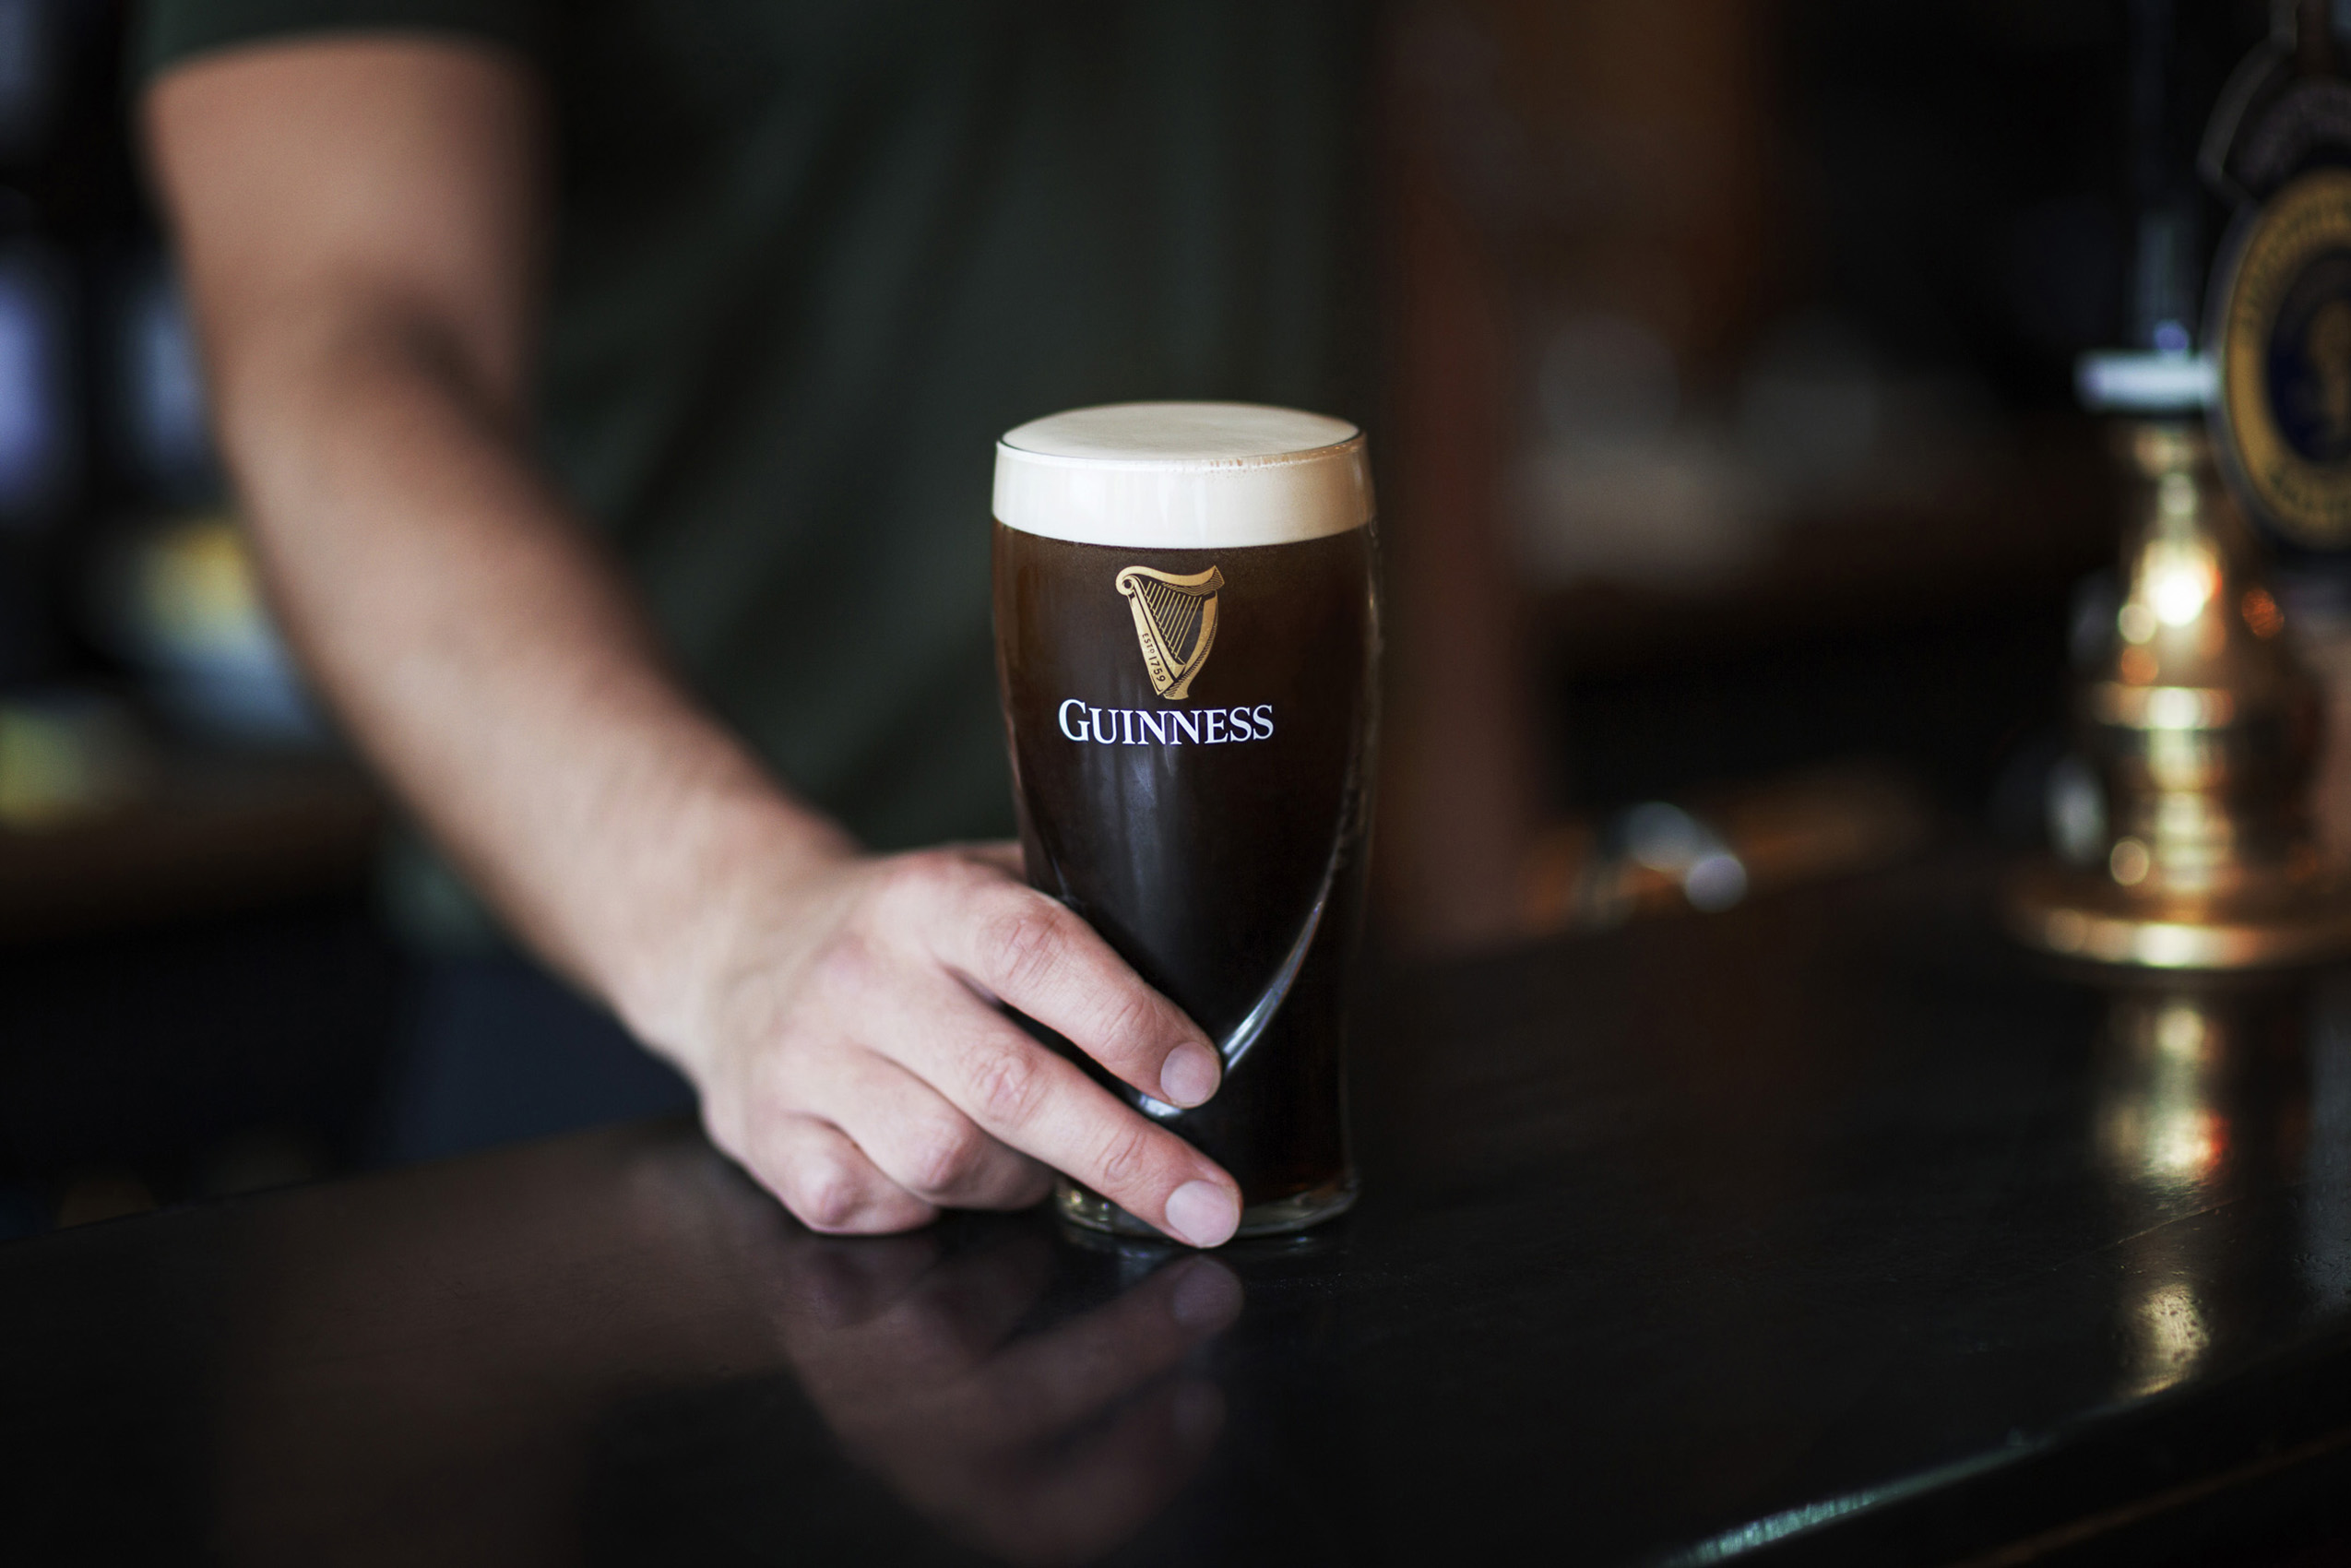 SteveRyan_Photographer_Drink_Beer_Guinness_Pub_24